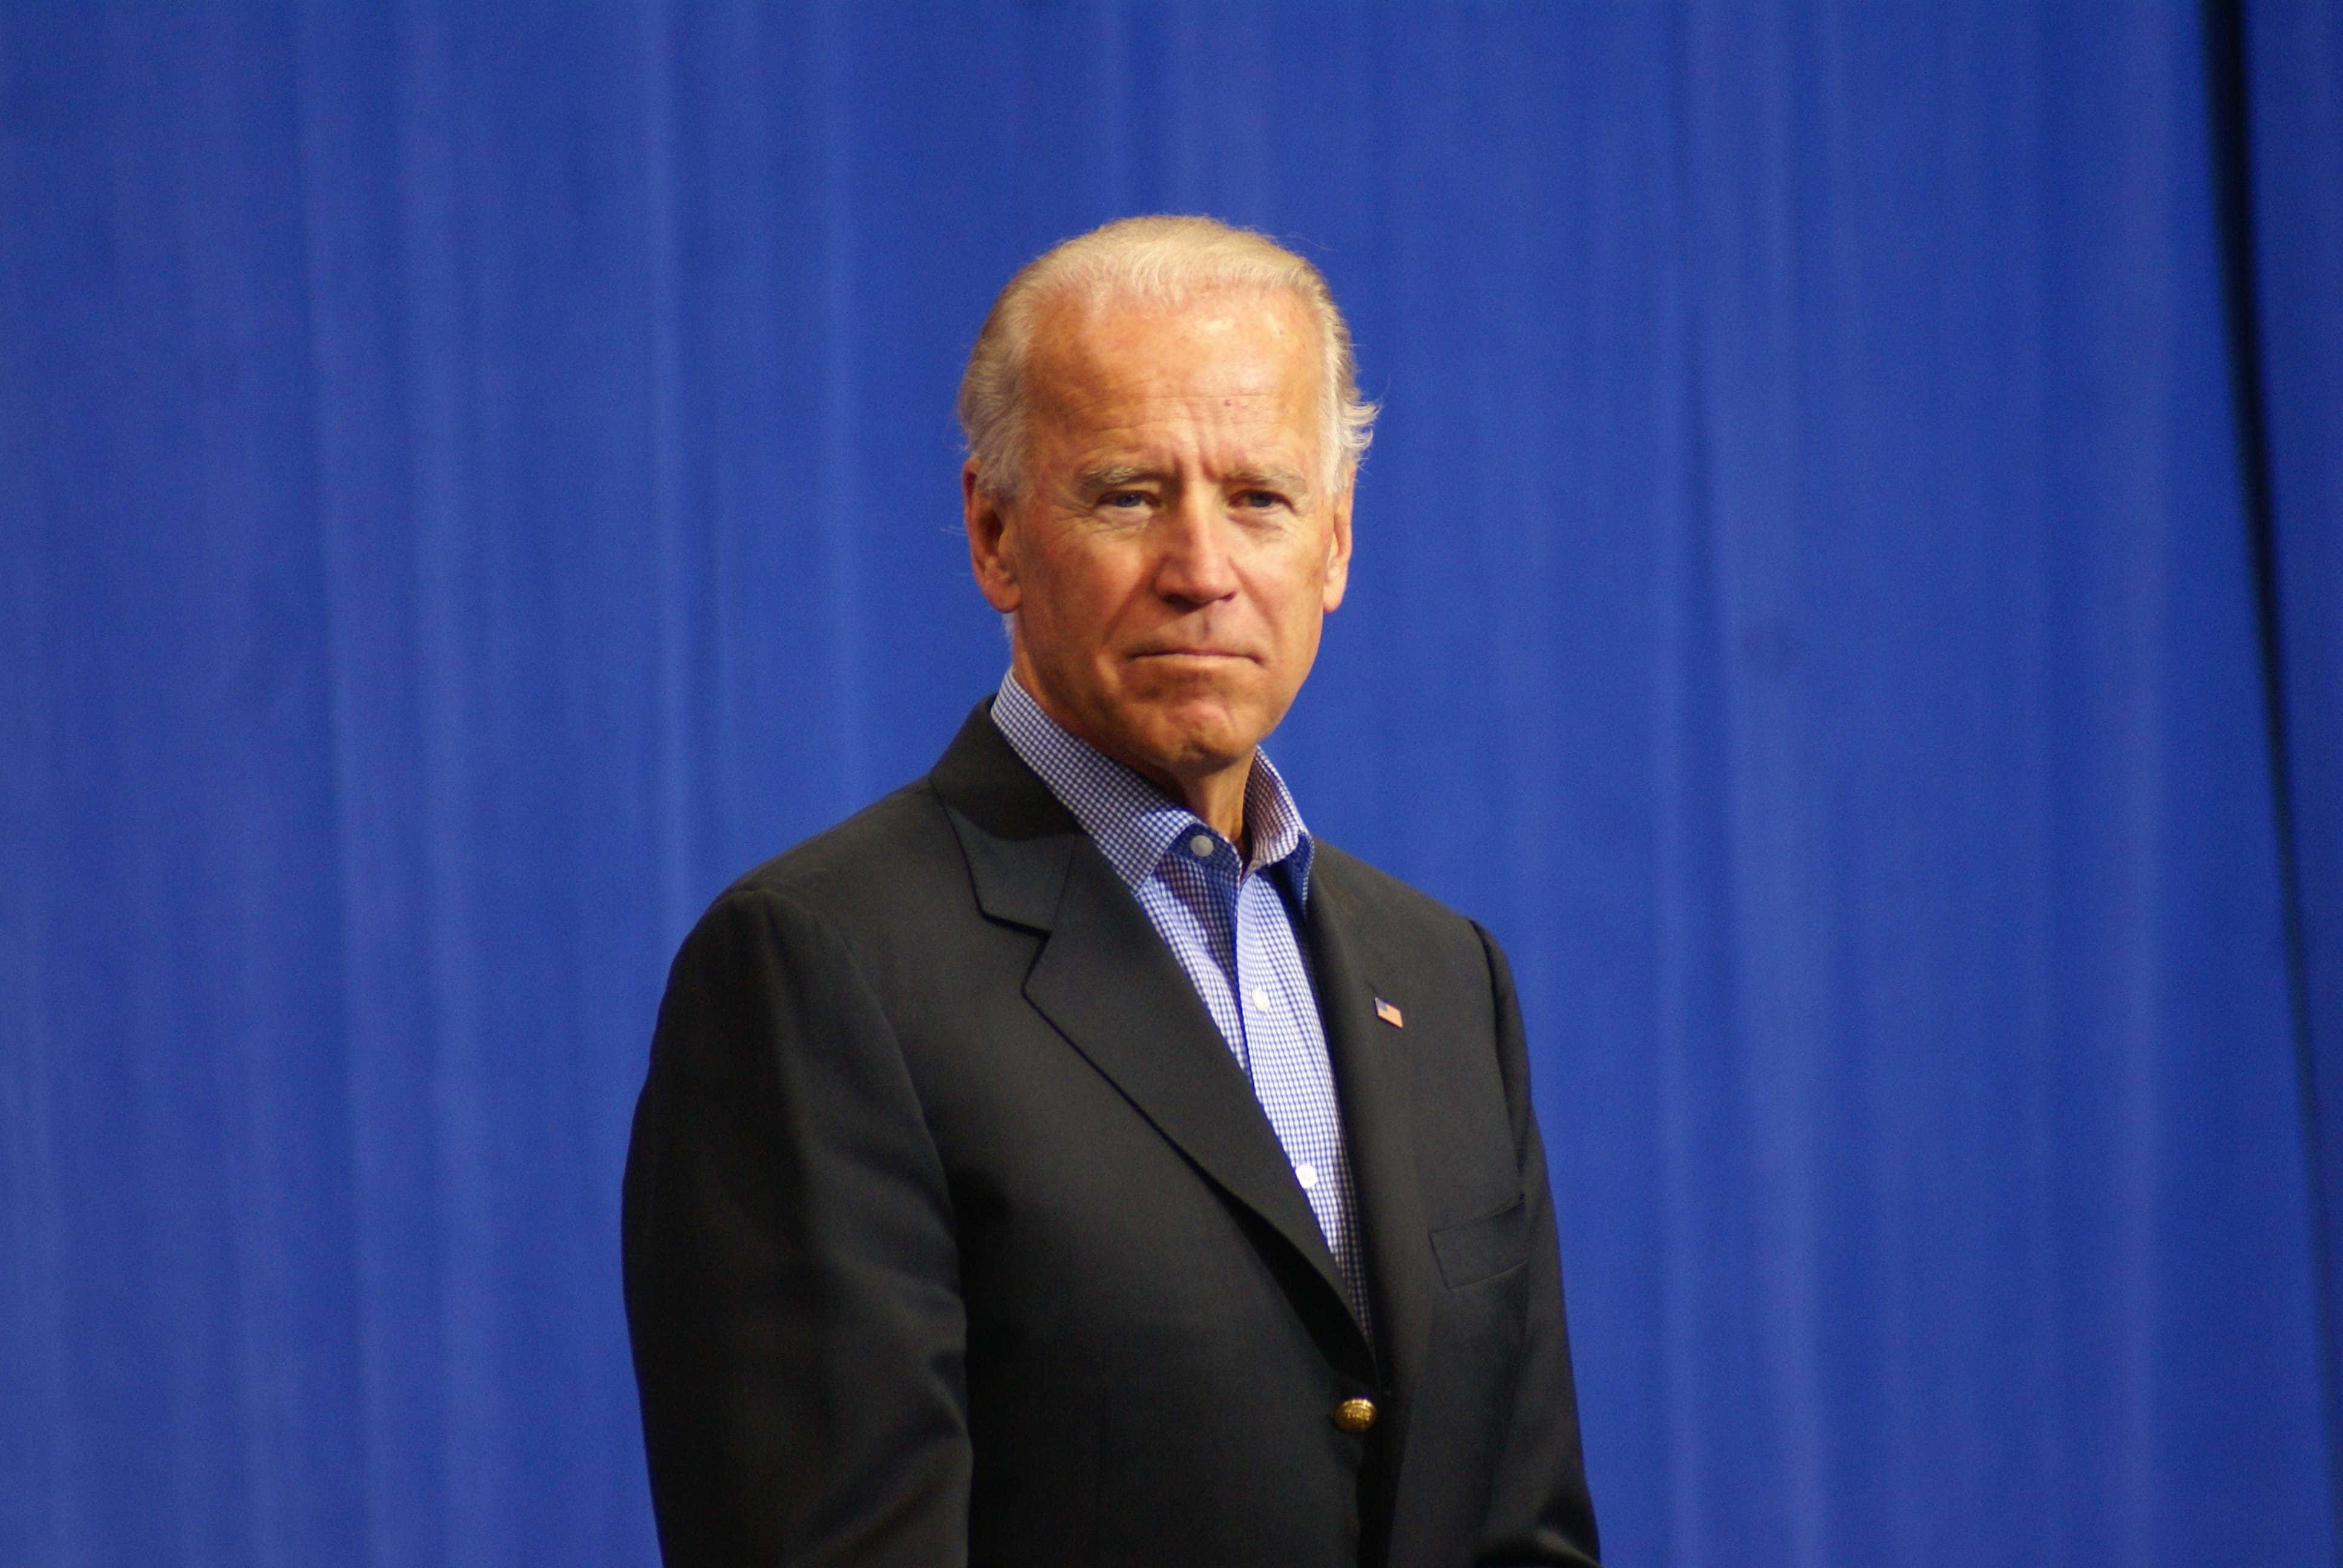 Then-U.S. President Joe Biden speaks on the campaign trail at an event in Merrimack, New Hampshire on September 22, 2012. (Image Credit: Marc Nozell)